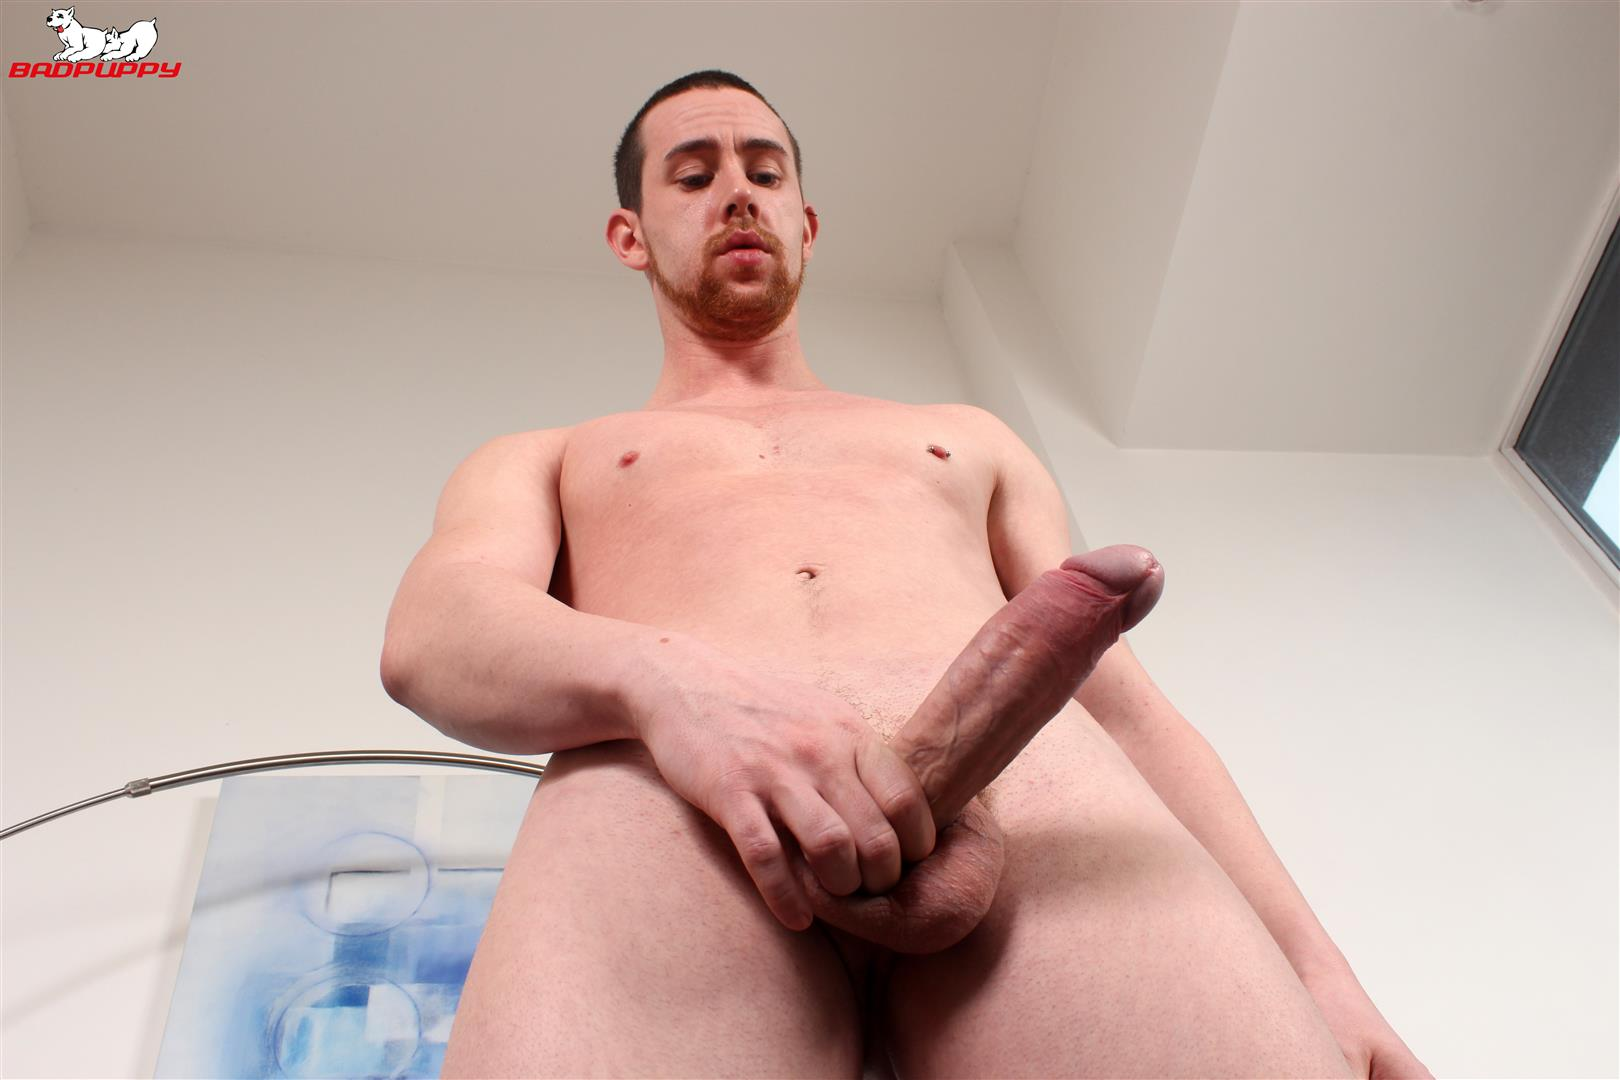 Badpuppy-Anthony-Naylor-Big-Uncut-Cock-Masturbation-09 Sexy British Amateur Plays With His Big Uncut Horse Cock